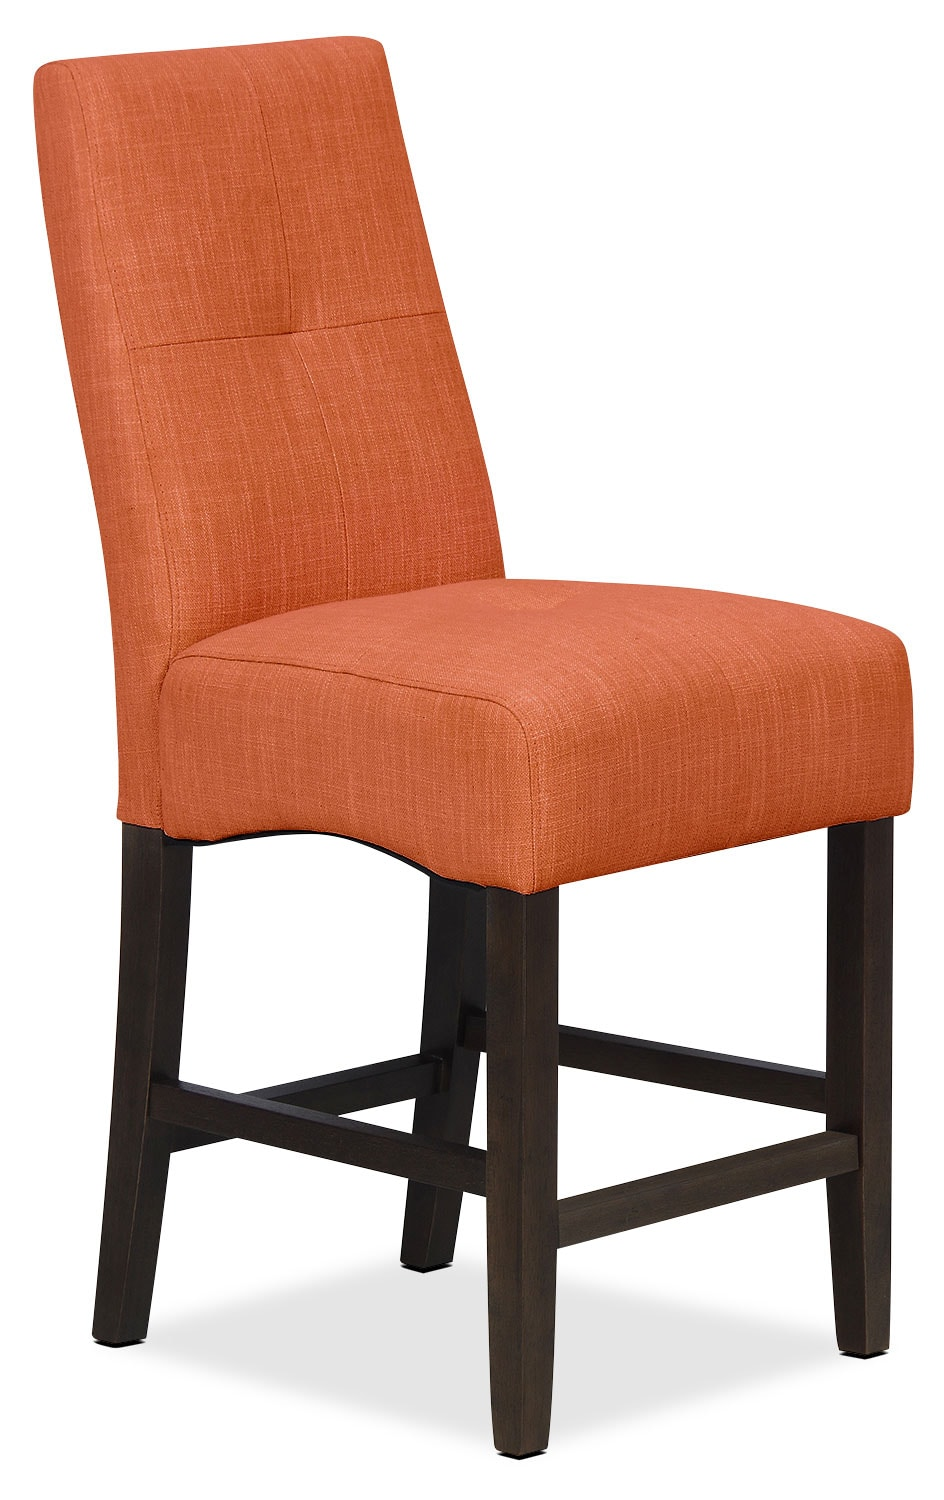 Soho Counter-Height Dining Chair – Tangelo